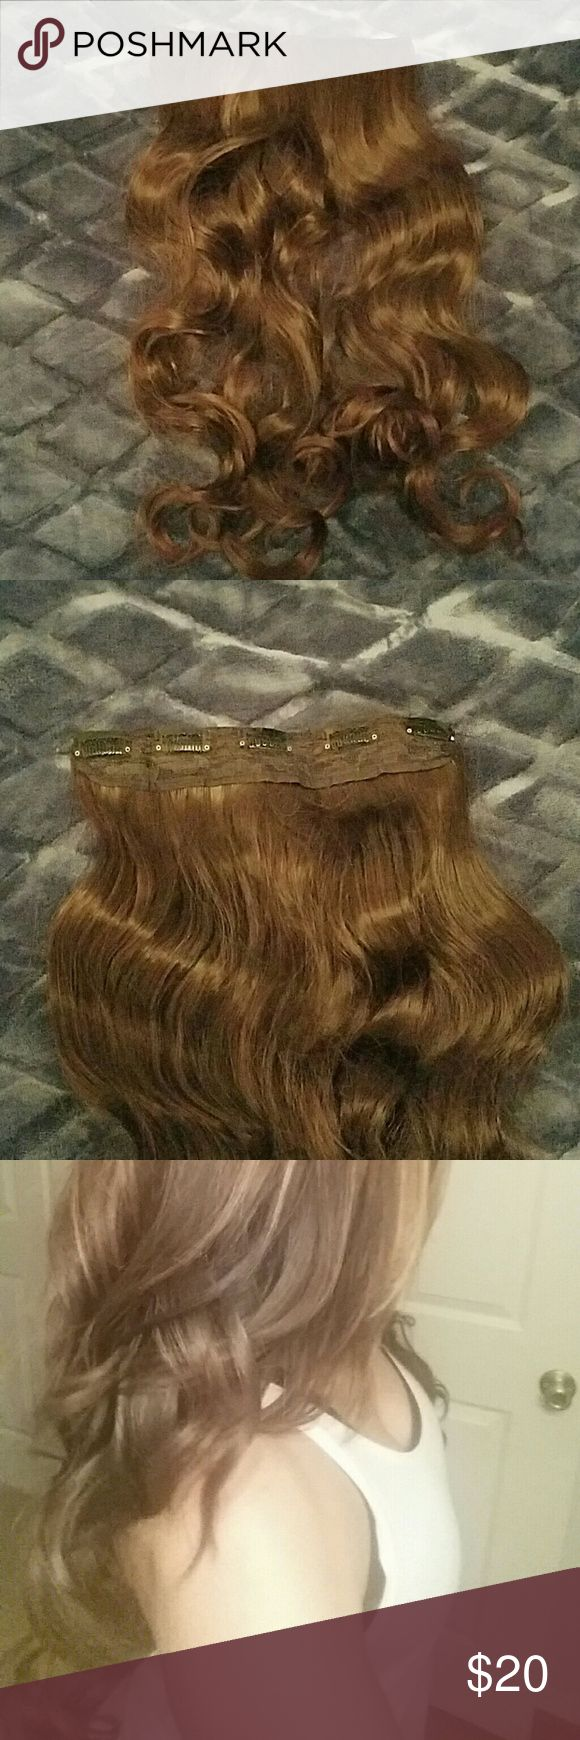 "Hair Fashion Curly Clip In Hair Extensions Length: 20"", perfect for medium brown to ligth brown.    Material:Matt high temperature/Japan high temperature fiber can be used by the curly iron or hair straightner  Item:clip on hair extensions Weight:130 g Other"